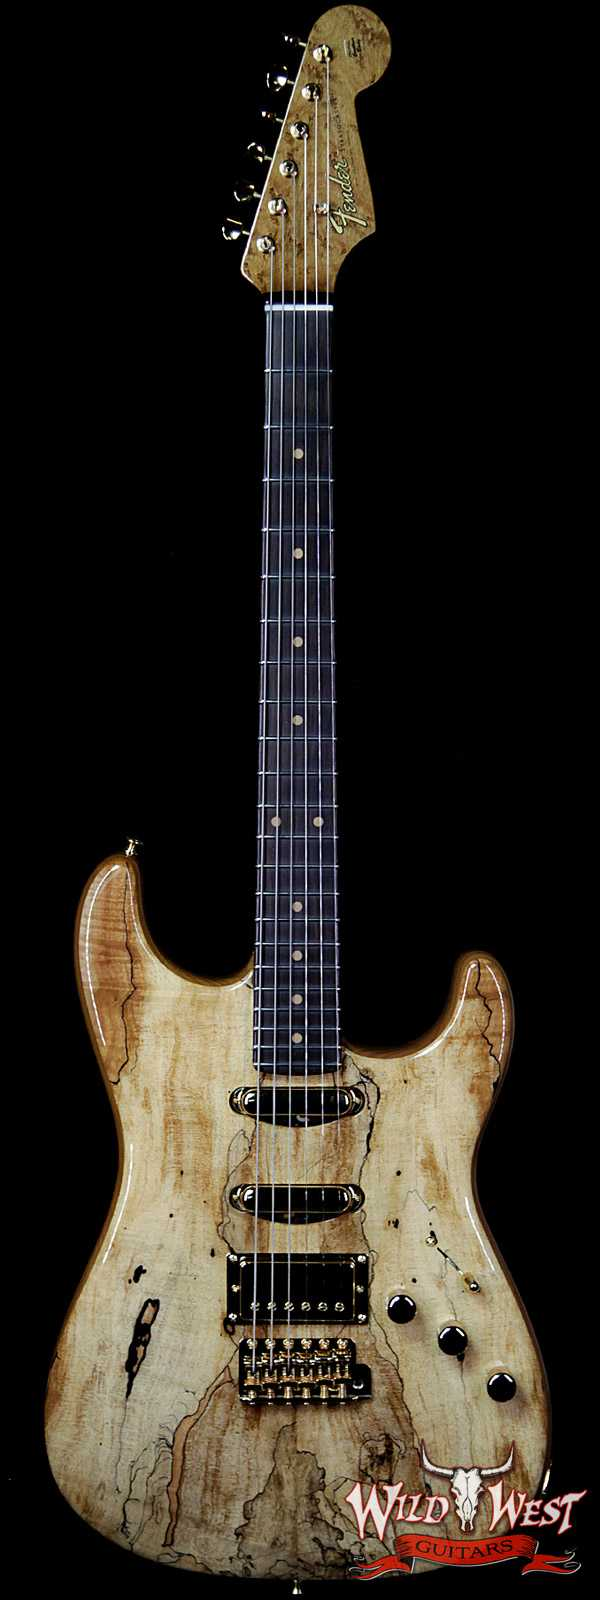 Fender Custom Shop Dennis Galuszka Masterbuilt Artisan Stratocaster HSS Spalted Maple Top Birdseye Neck